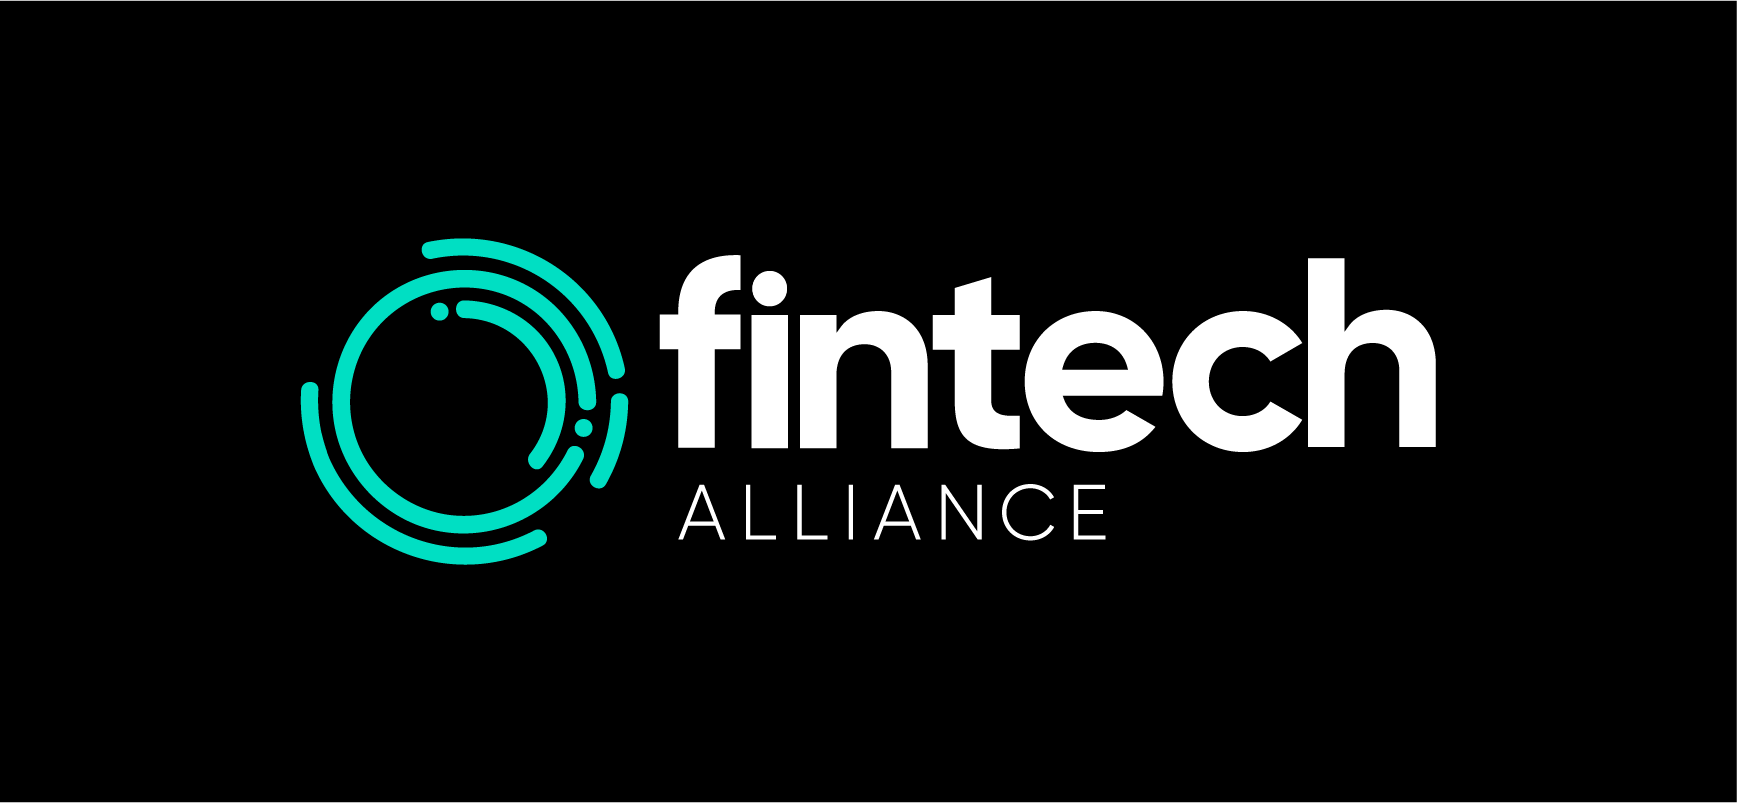 FinTech can be the silver bullet to banking the UK's unbanked